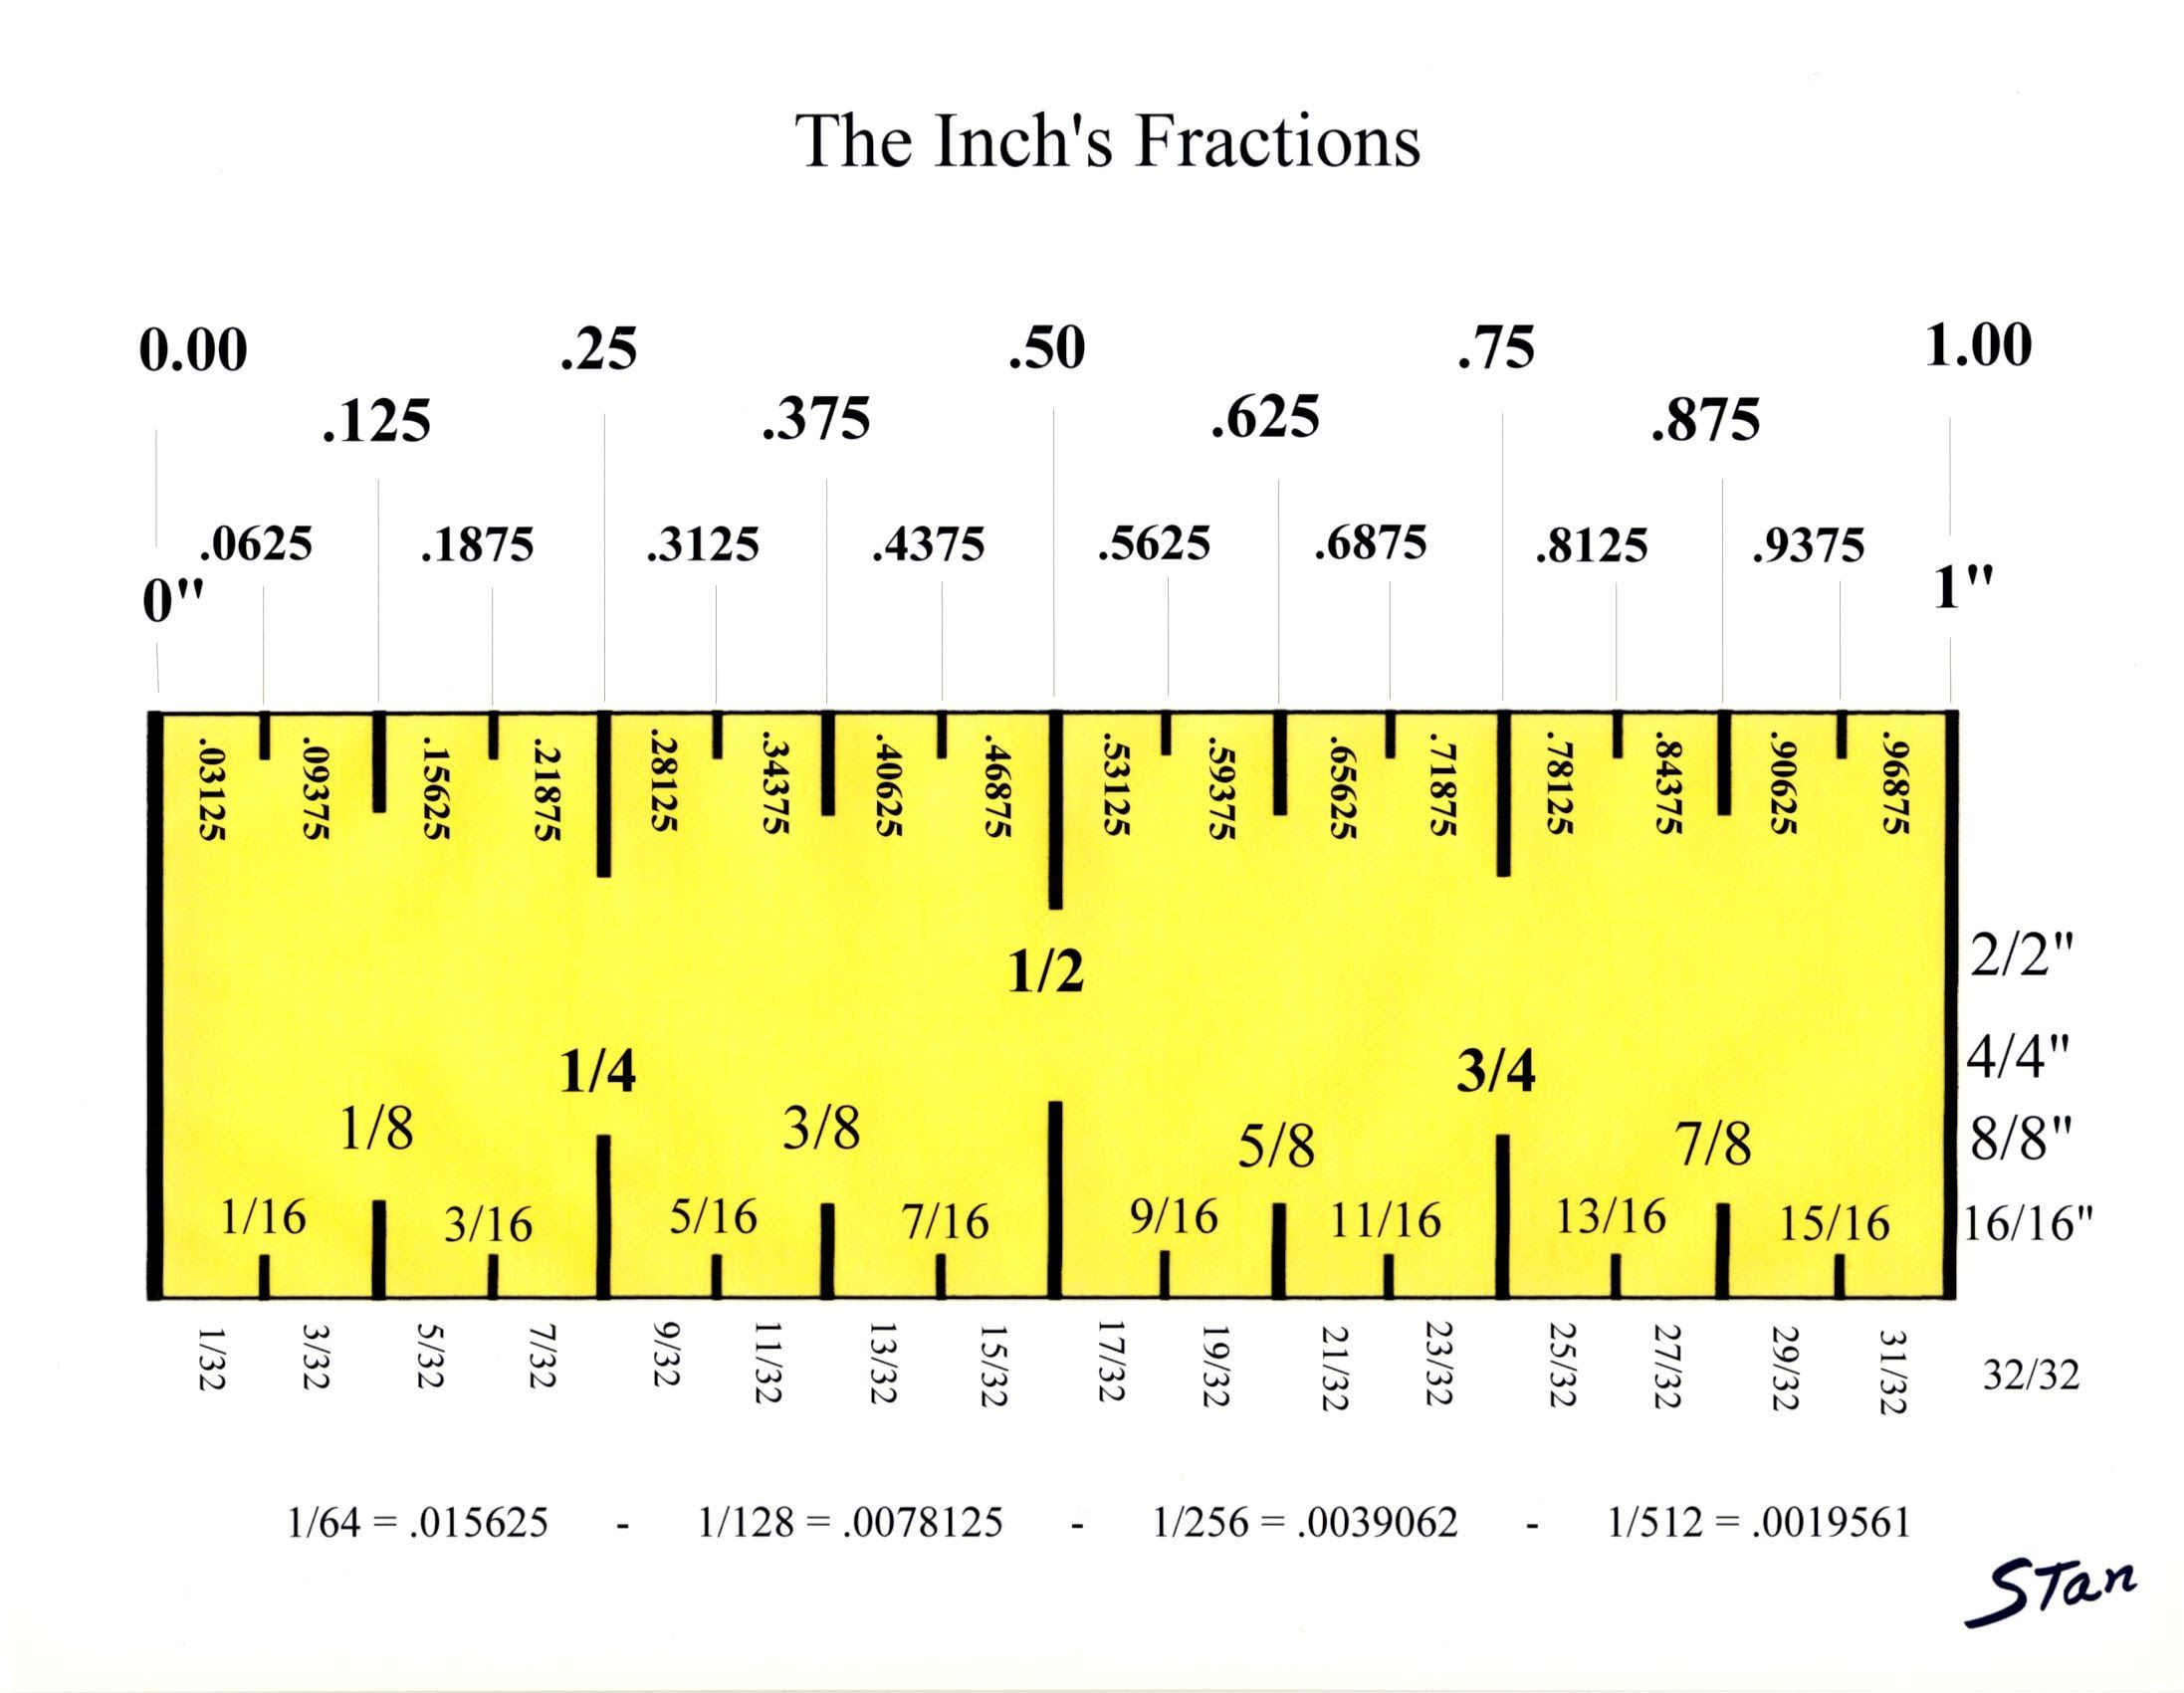 The Inch Understanding It S Fractions Converting It To 100th S Youtube Tape Reading Ruler Measurements Tape Measure